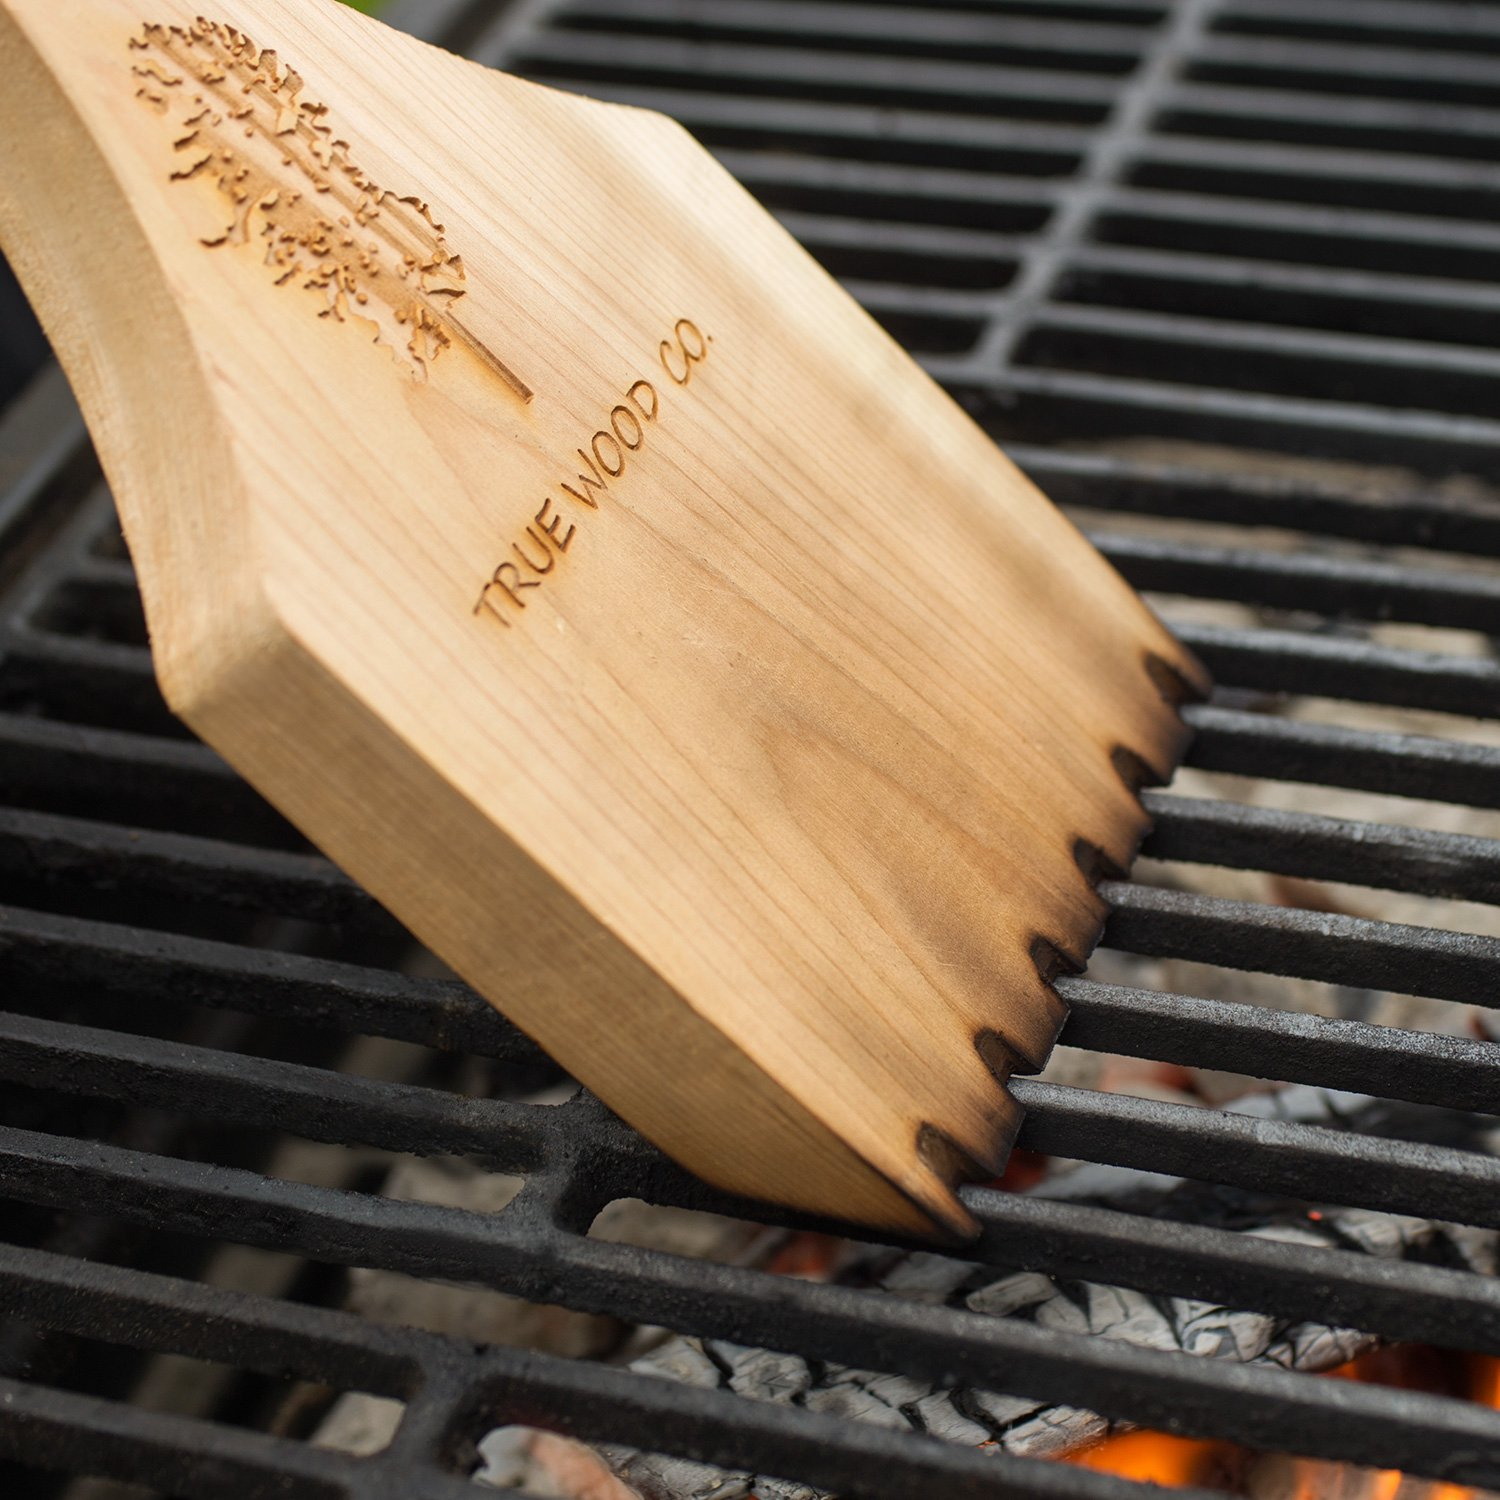 Wooden BBQ Scraper for Grill Cleaning. Safe Alternative to Wire BBQ Brushes. Extra Long Handle for Safety and Comfort. Professional Bristle Free Cleaner. West Red Cedar Wood. (21.5'') by True Wood Co. (Image #2)